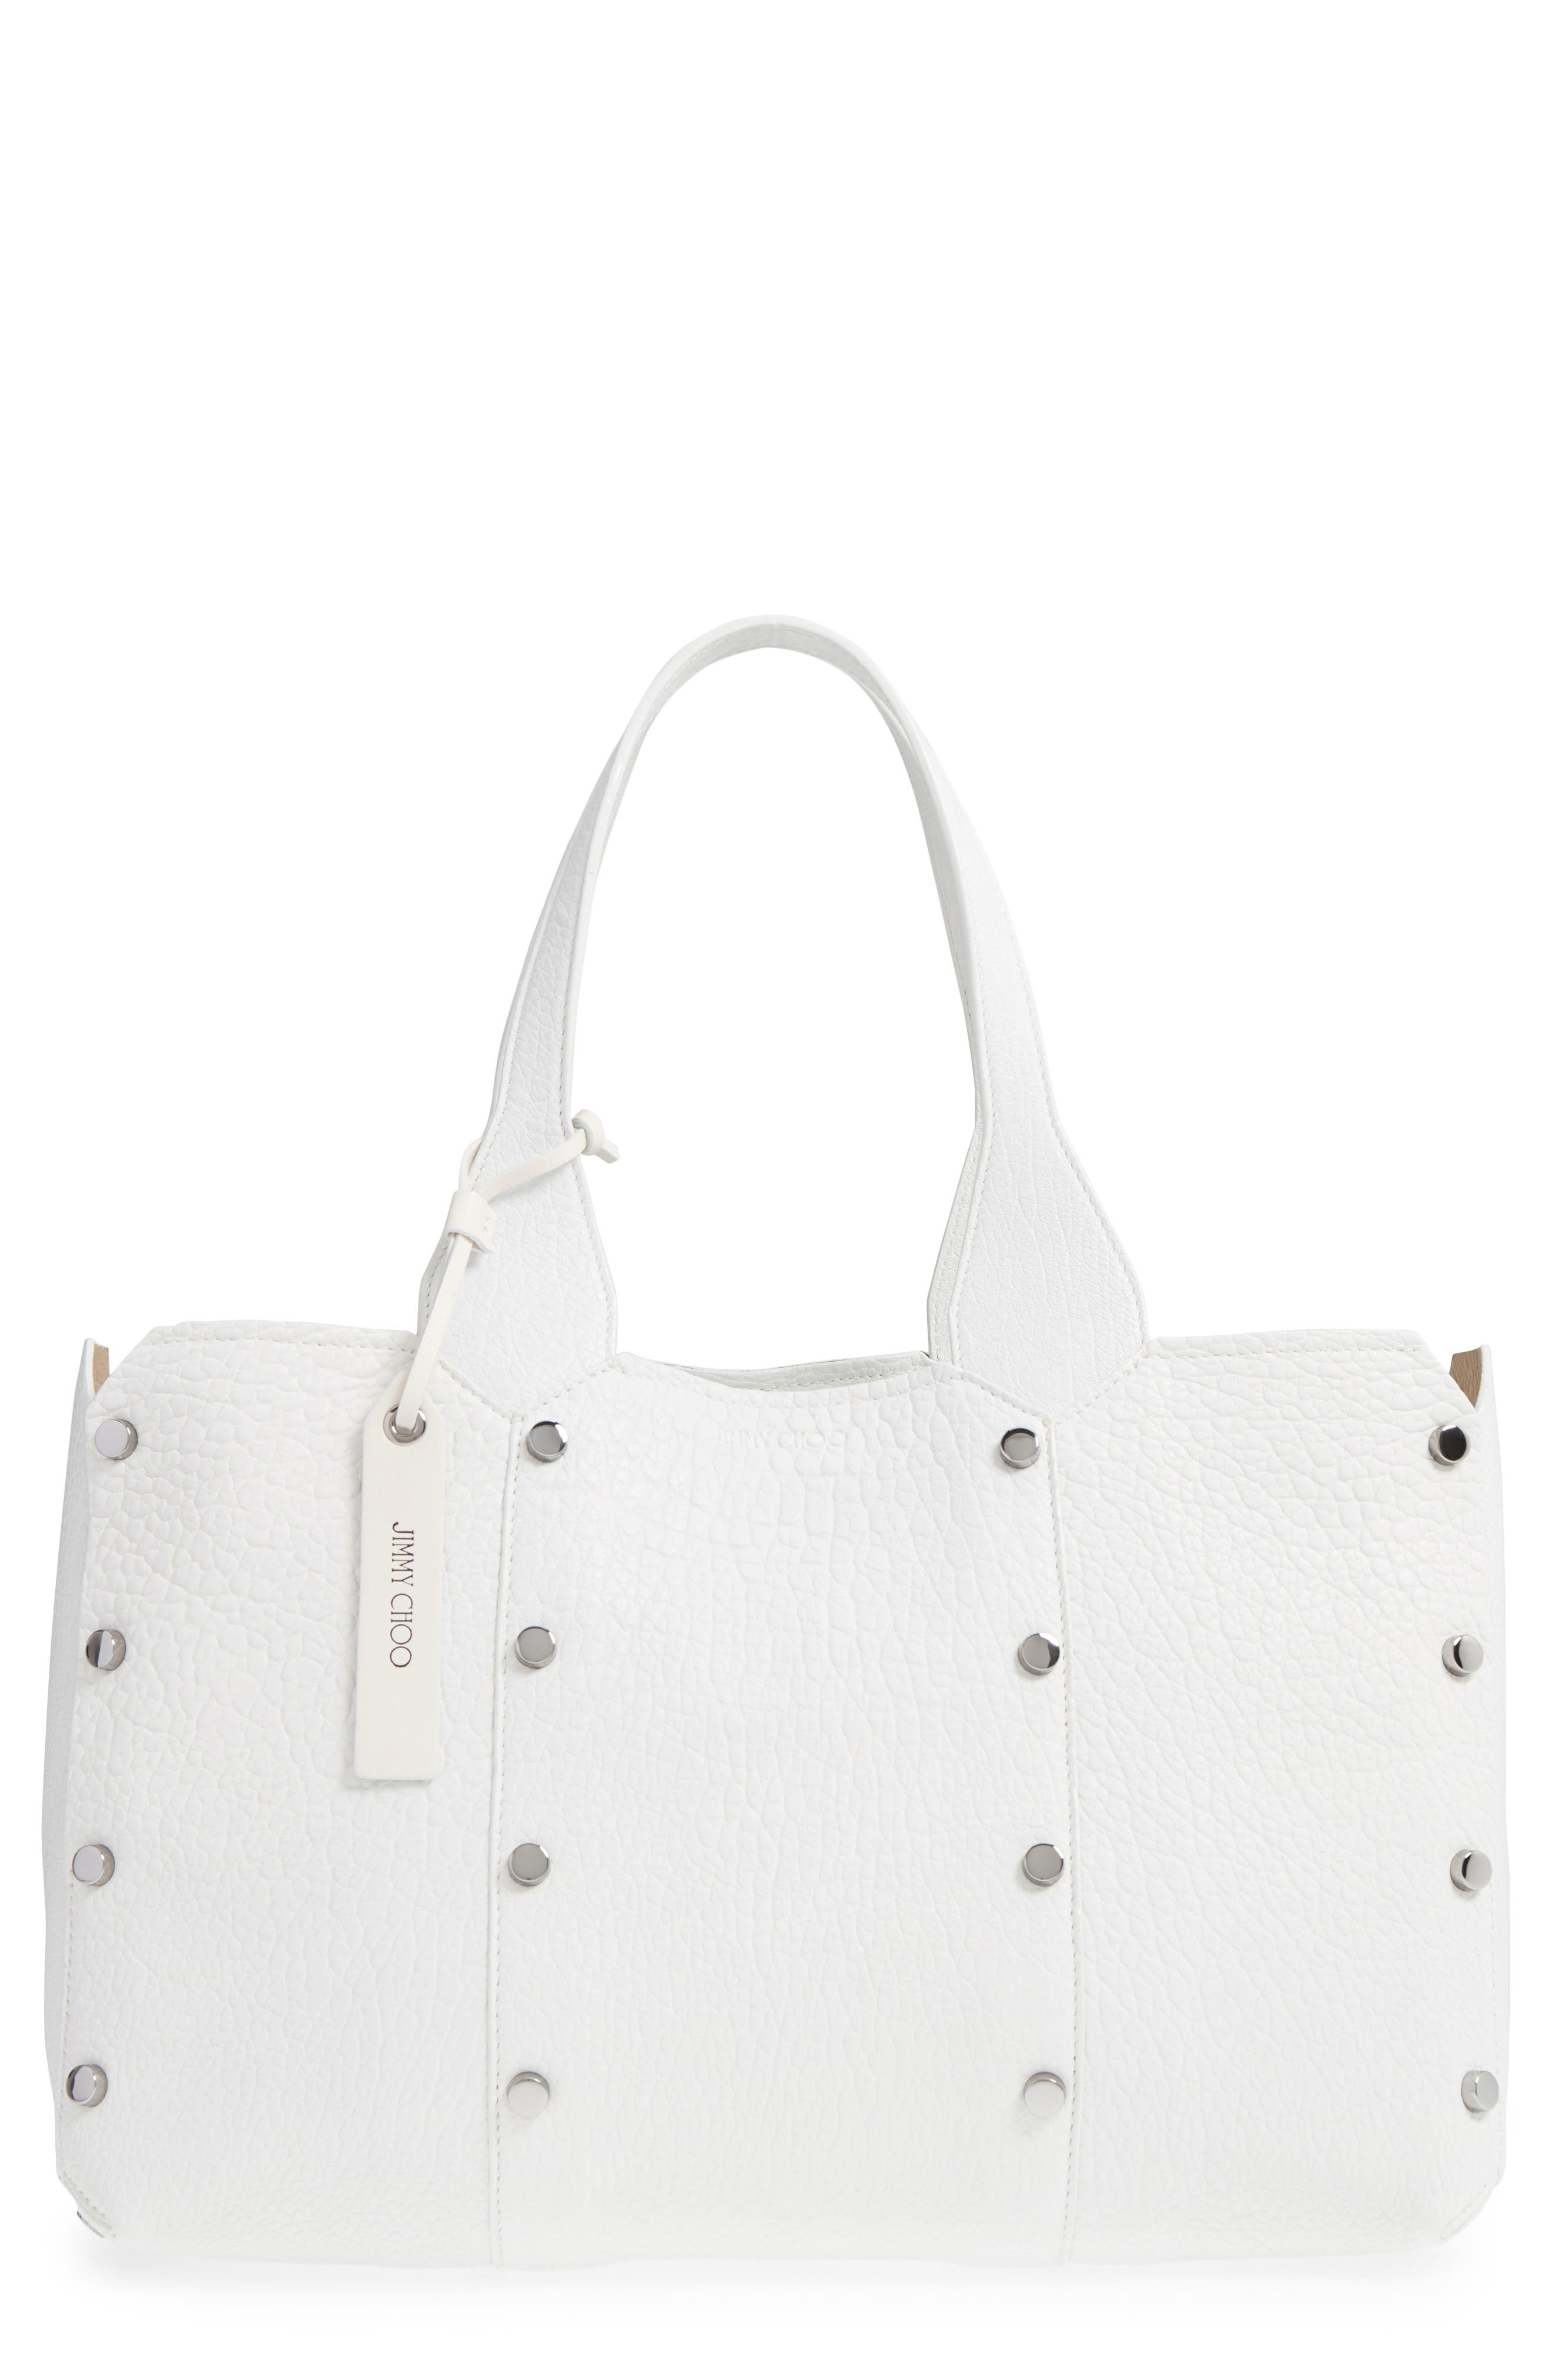 Main Image - Jimmy Choo Lockett Leather Shopper